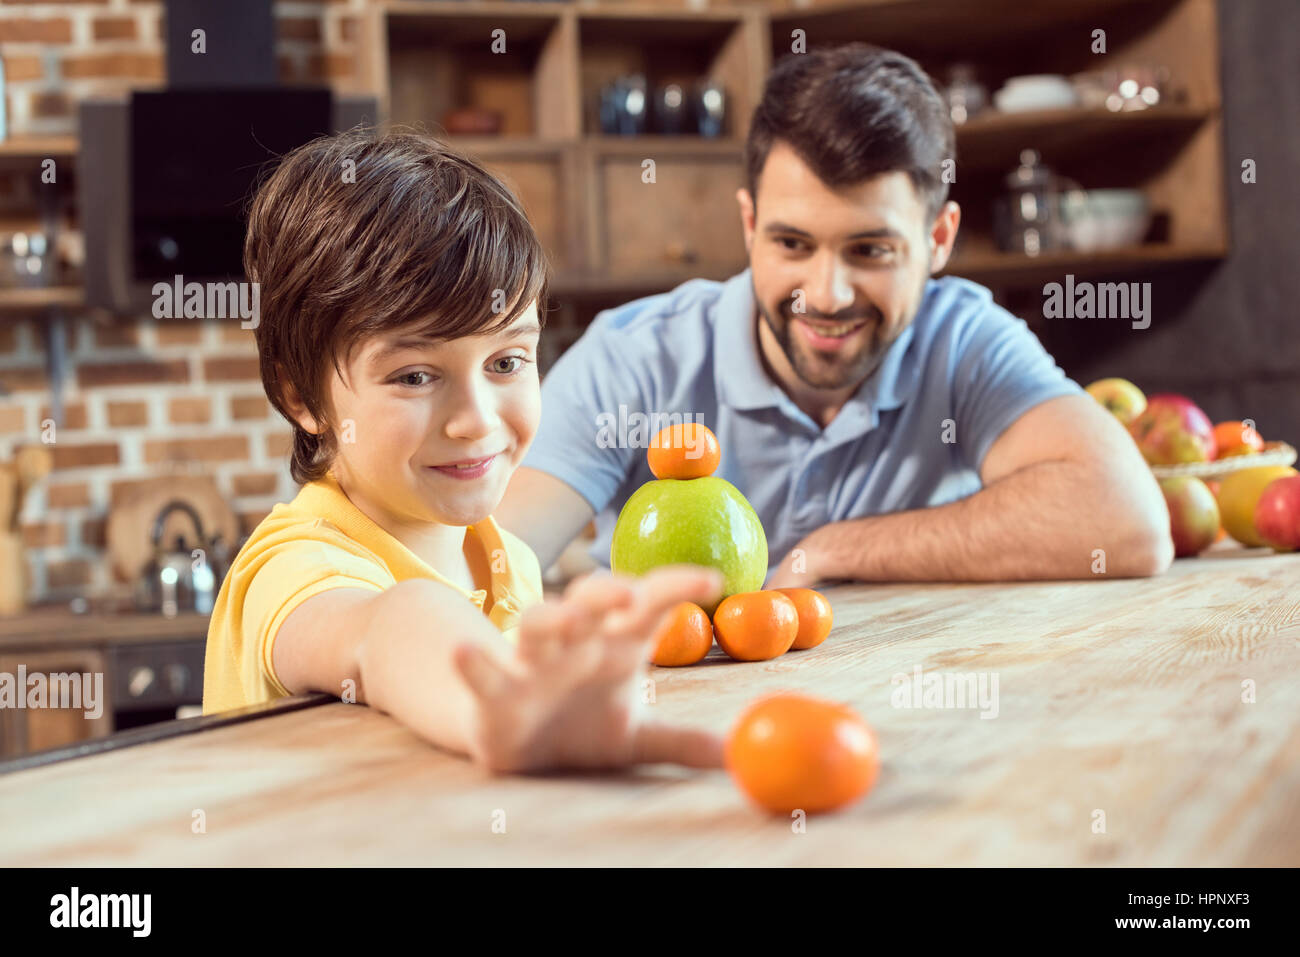 father and son playing with citrus fruits in kitchen - Stock Image